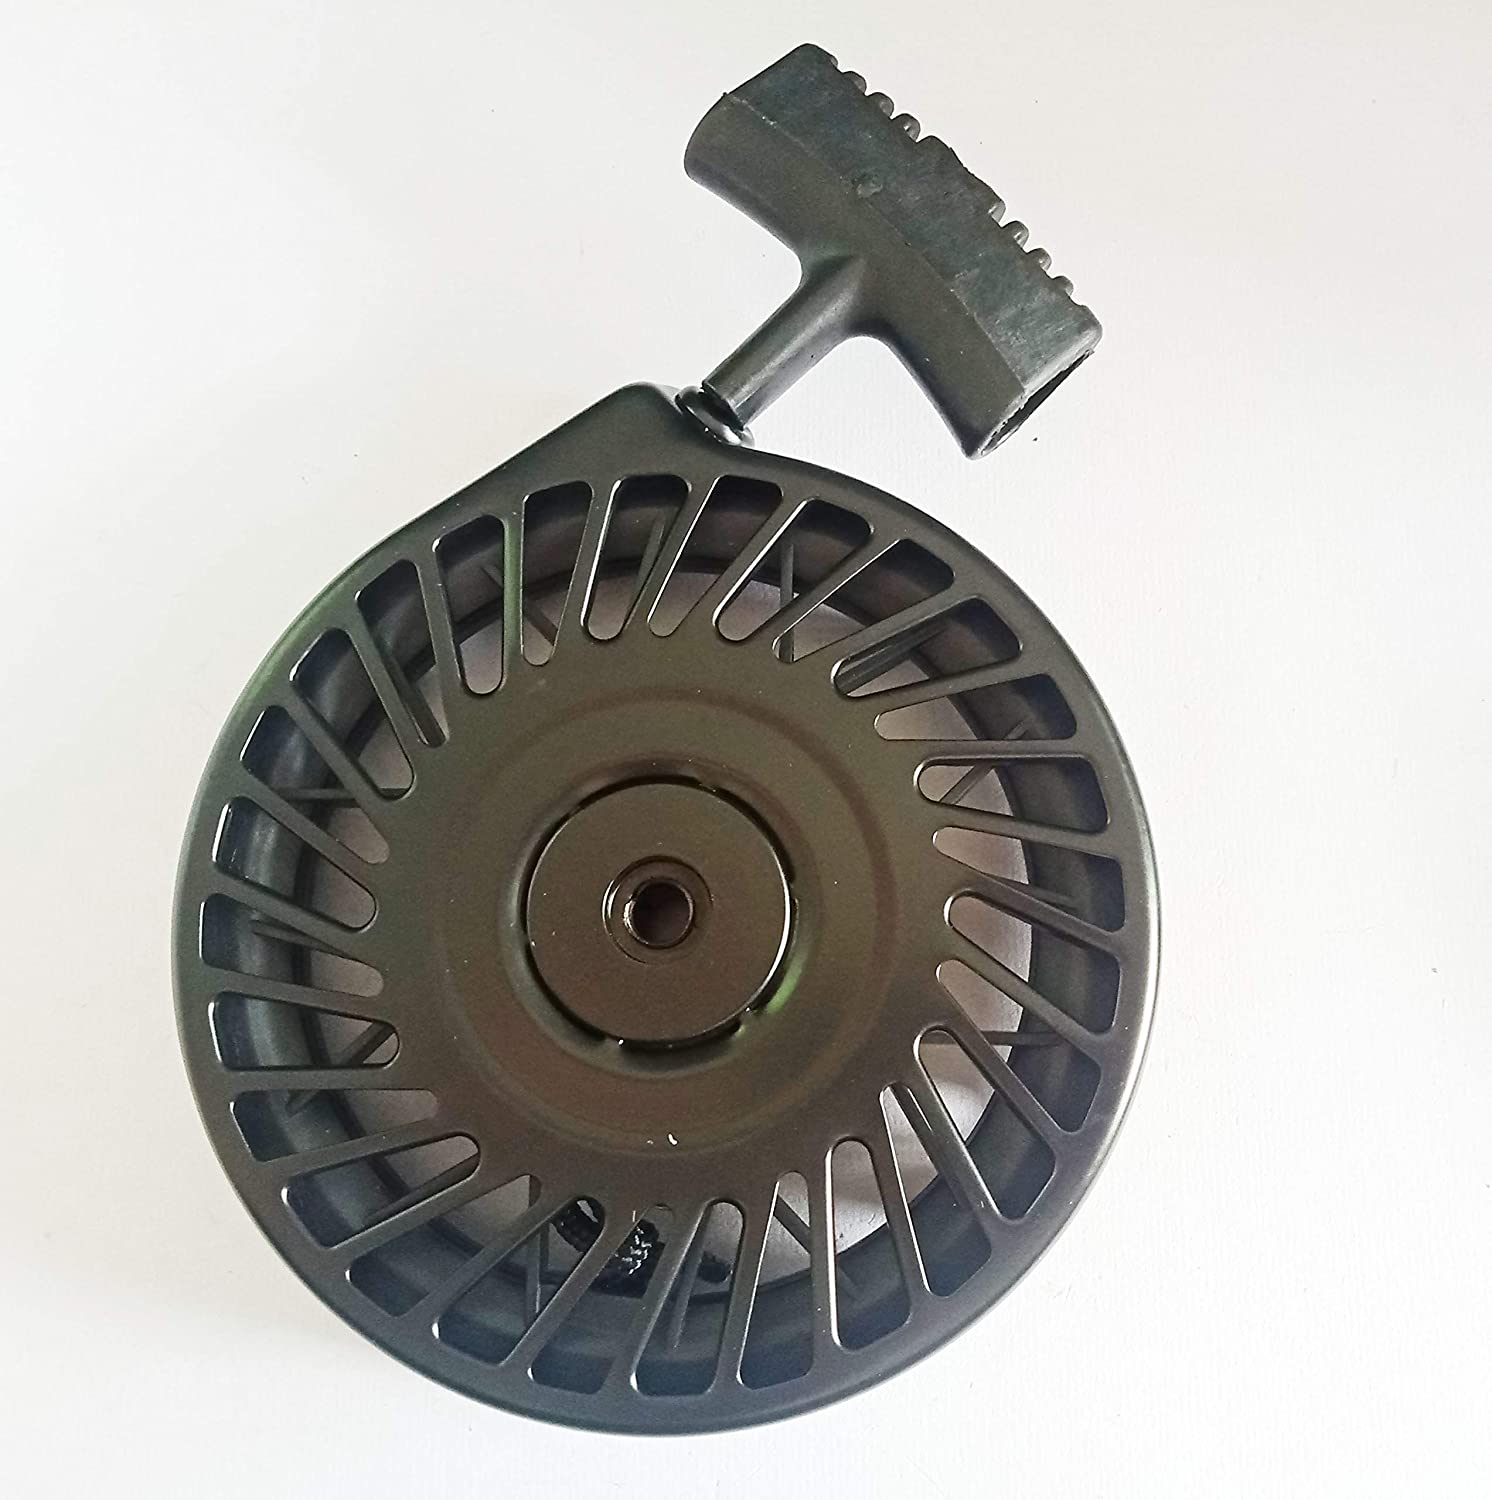 Aquiver Auto Parts New Replacement Recoil Starter Assembly for Tecumseh 590472,590621,590686,590694,590737,590785,590787